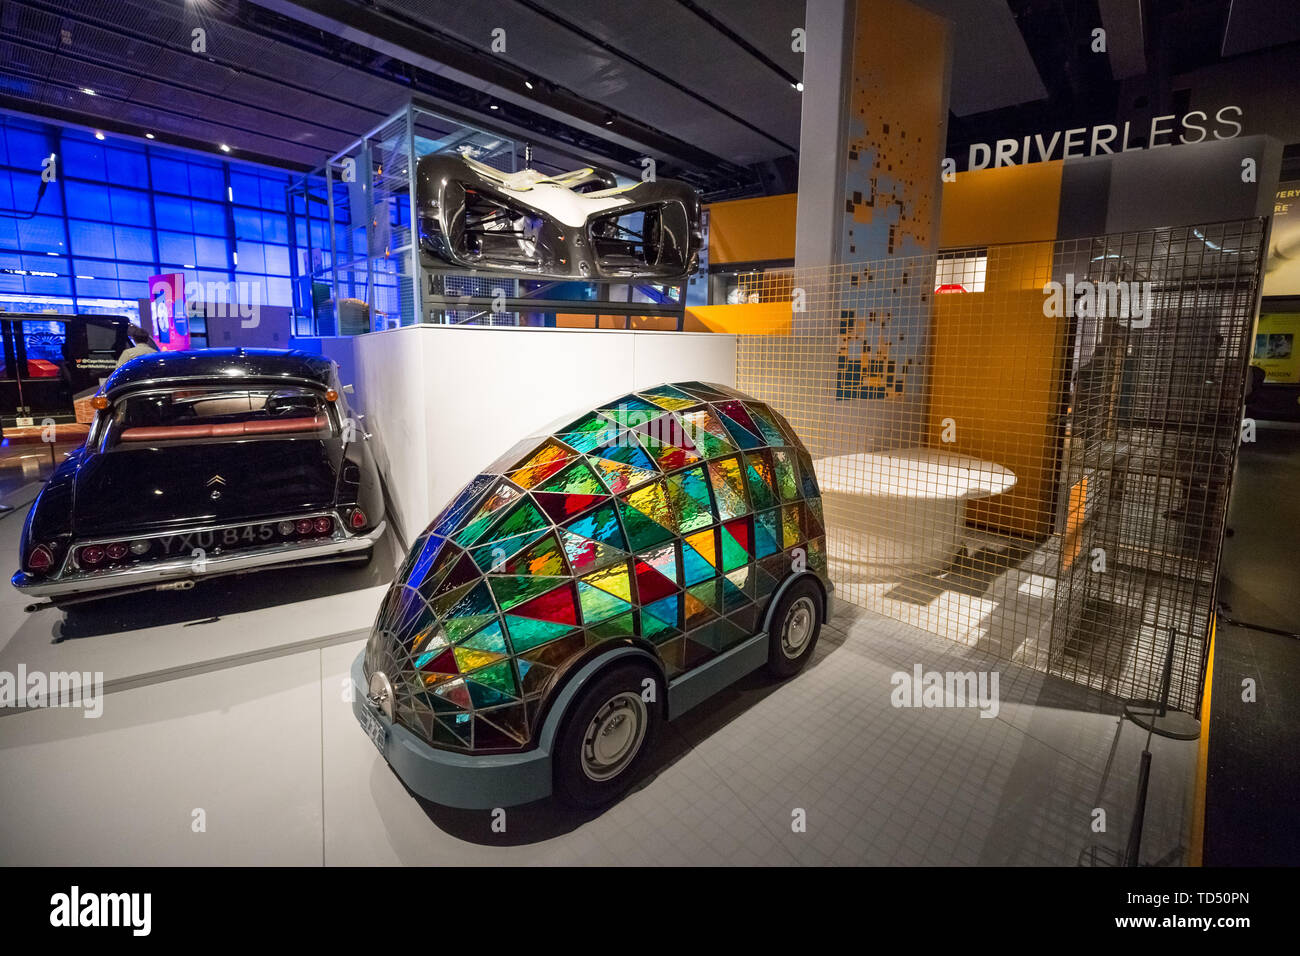 London, UK. 12th June 2019. Driverless technology 'Who is in control?' exhibition is launched the Science Museum. Pictured(centre): 'Stained Glass Driverless Sleeper Car of the Future' designed by artist Dominic Wilcox. Exploring the history of self-driving vehicles, the exhibition also examines how much control we're willing to transfer to them and how their wider deployment could shape out habits, behaviour and society. Credit: Guy Corbishley/Alamy Live News - Stock Image